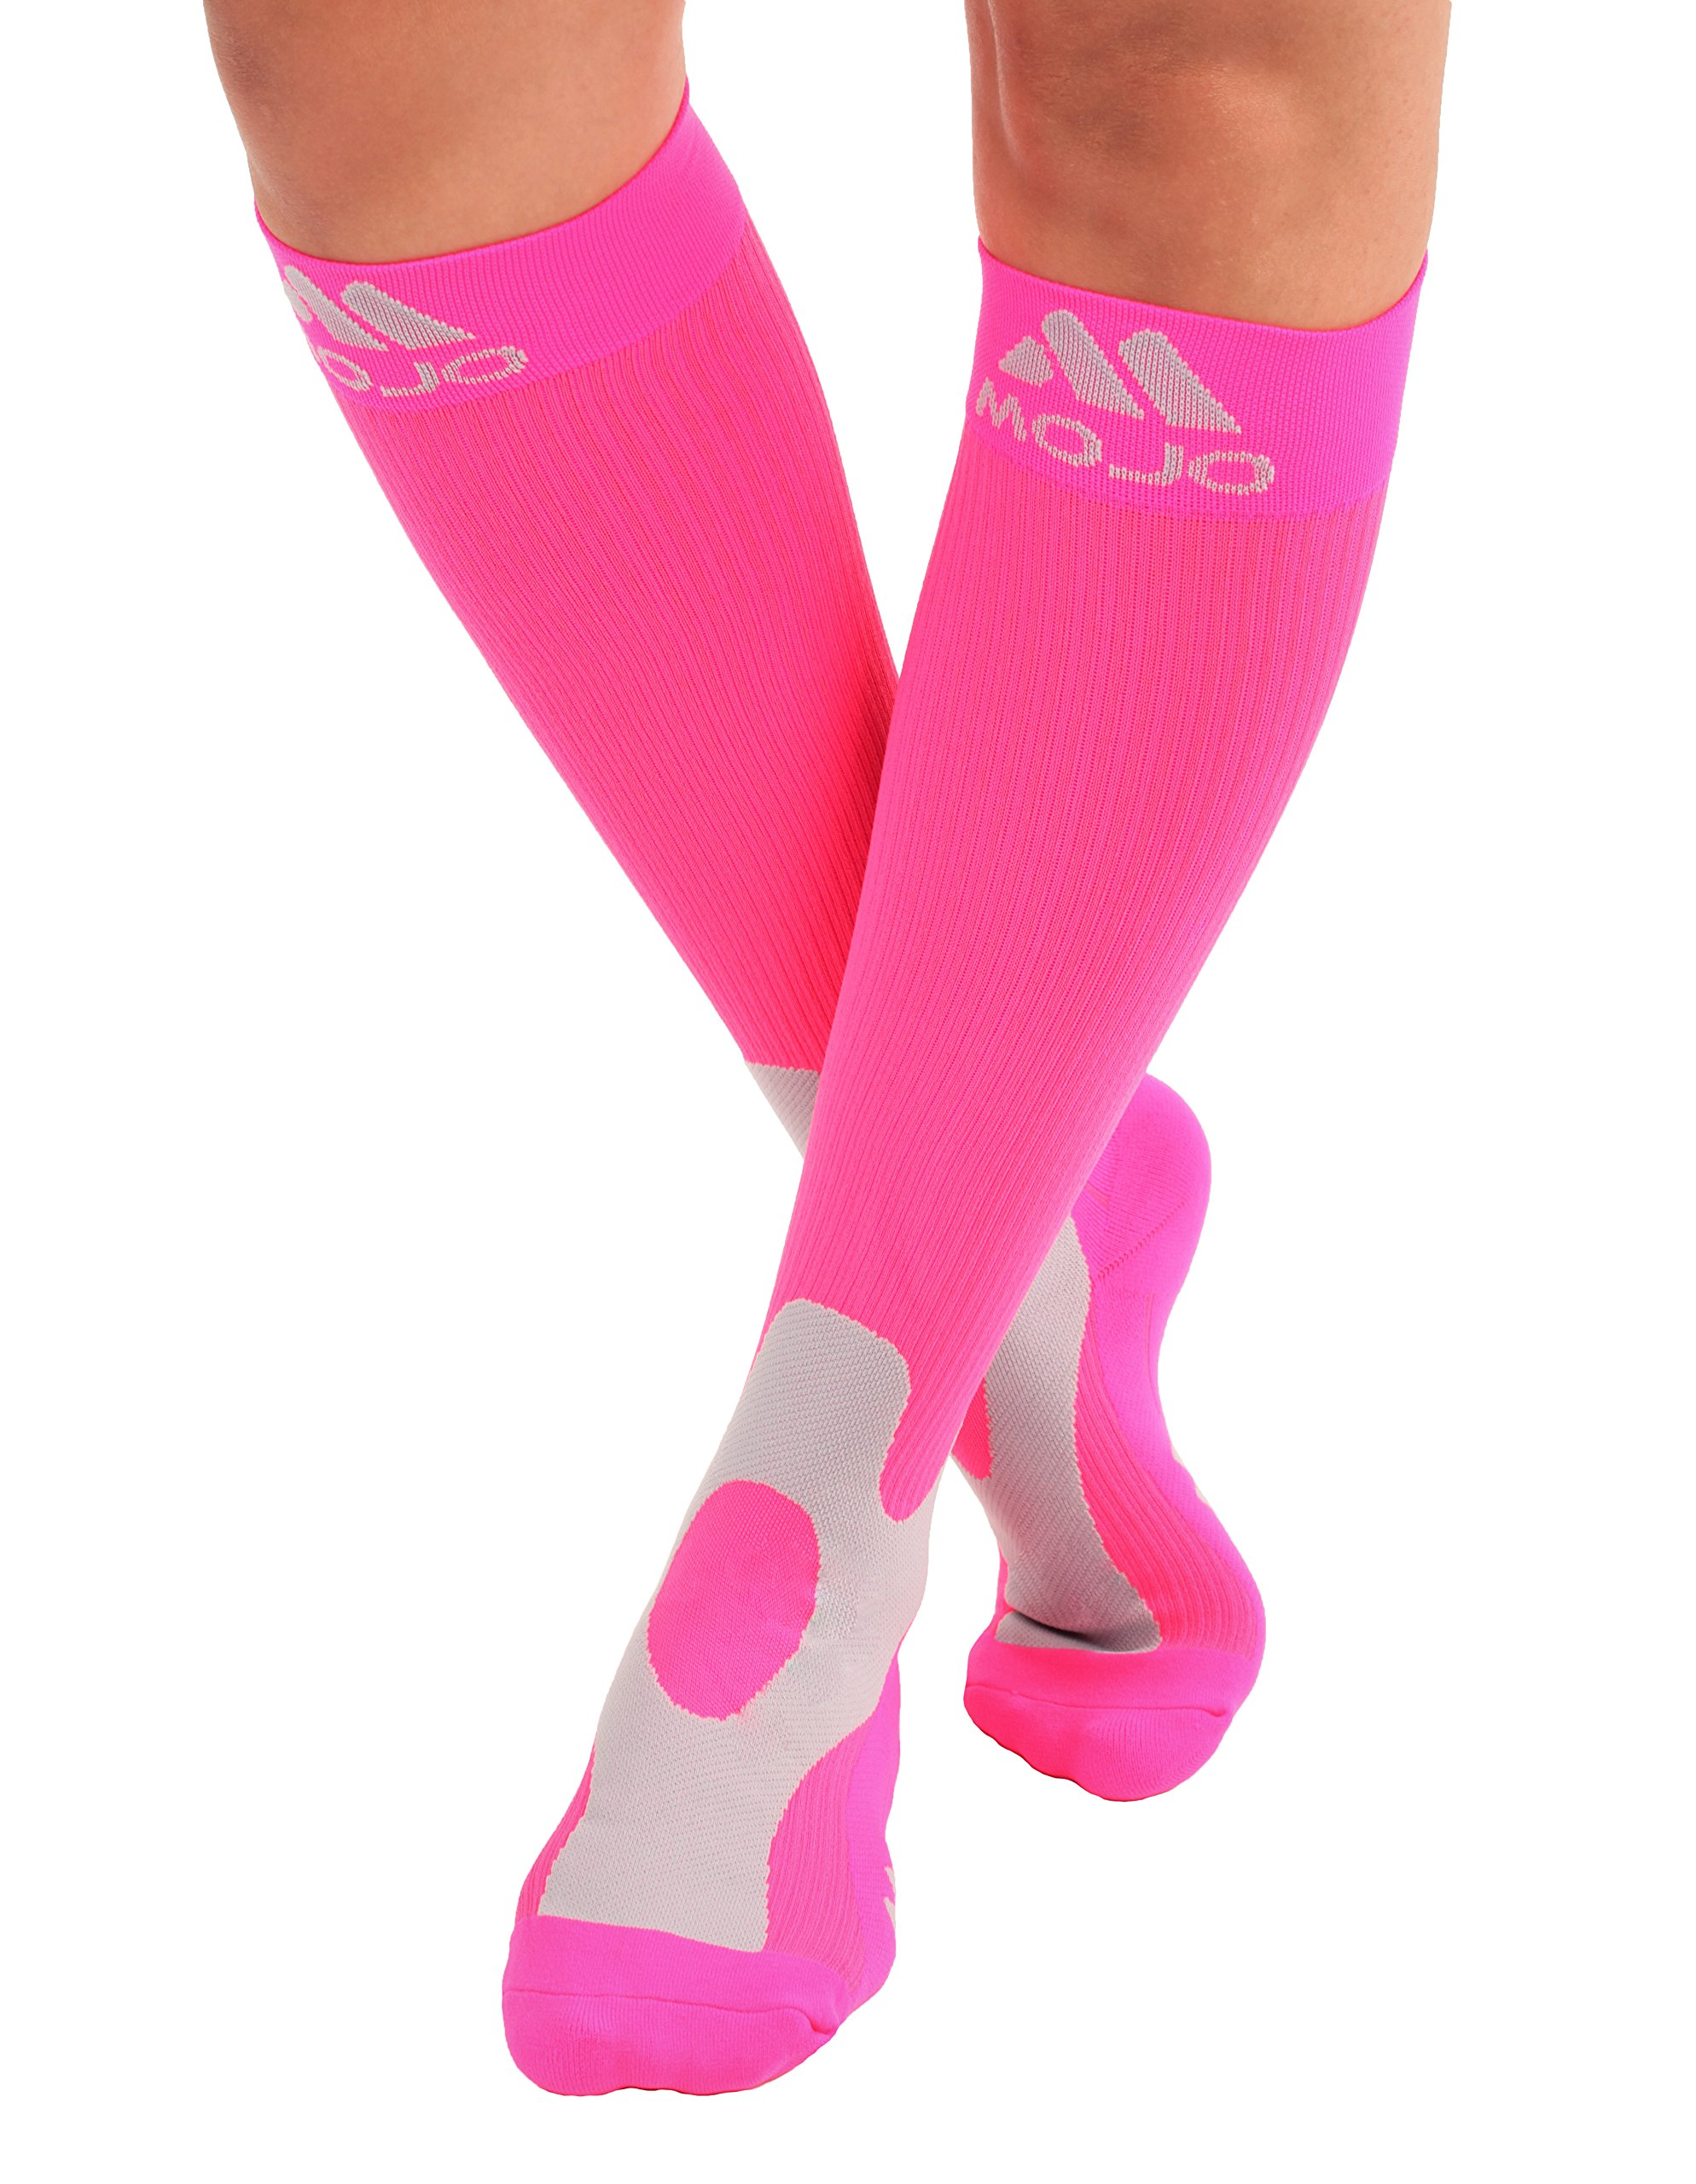 9328251390d Mojo Compression Socks for Women 20-30mmHg Made with Coolmax and Soft Easy  to get